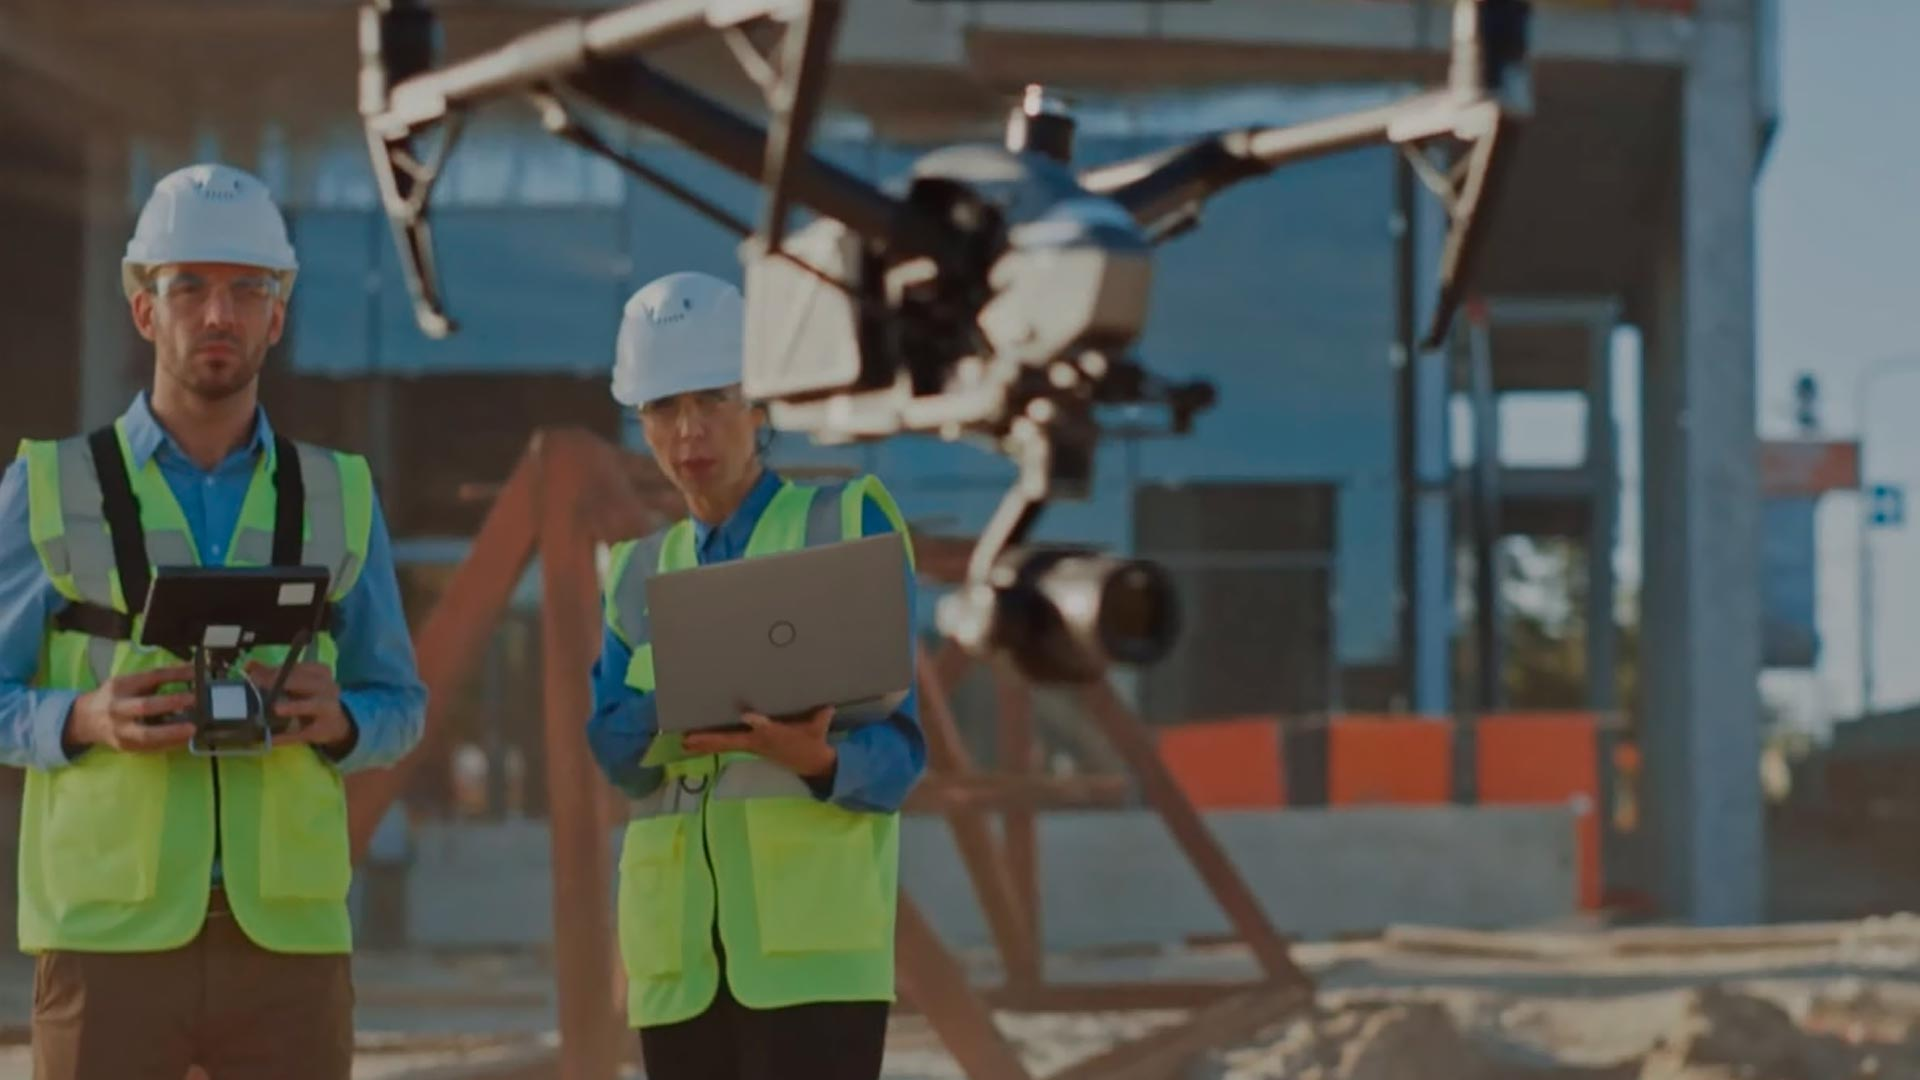 WE PROVIDE sUAS, BATHYMETRY & LASER SCANNING SERVICES